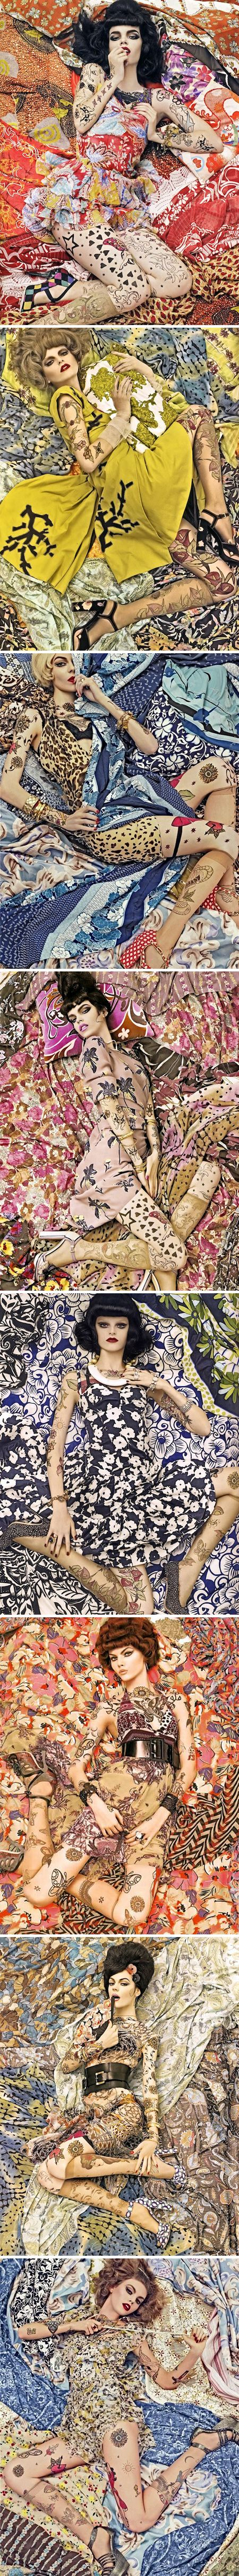 Vogue Italia Spring Patterns Issue...